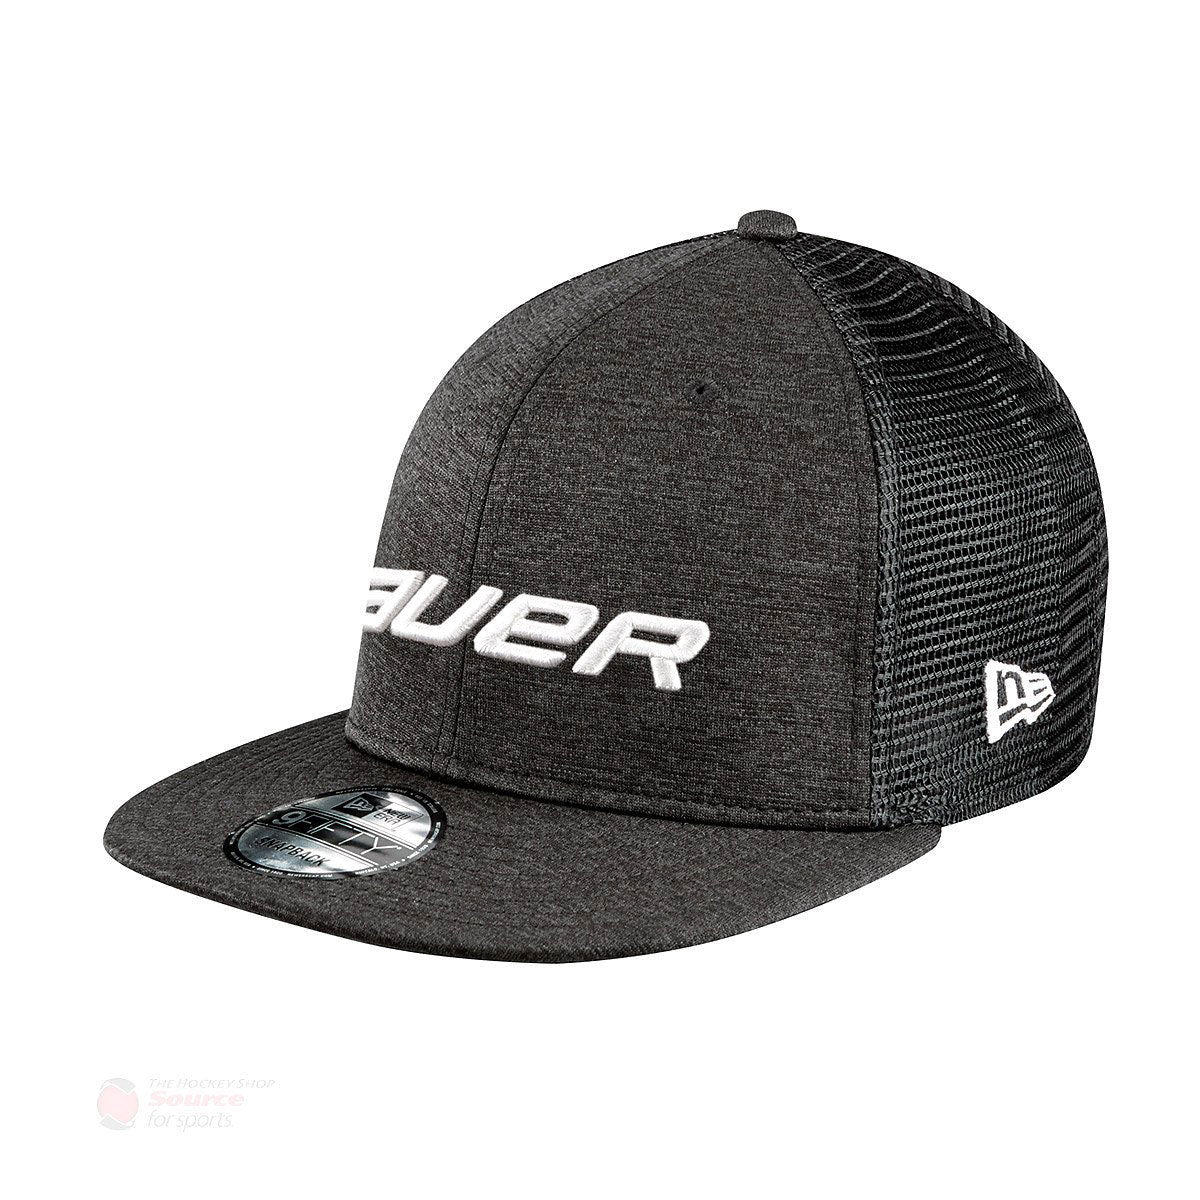 227cff4a436 Bauer 9Fifty Snapback Hat